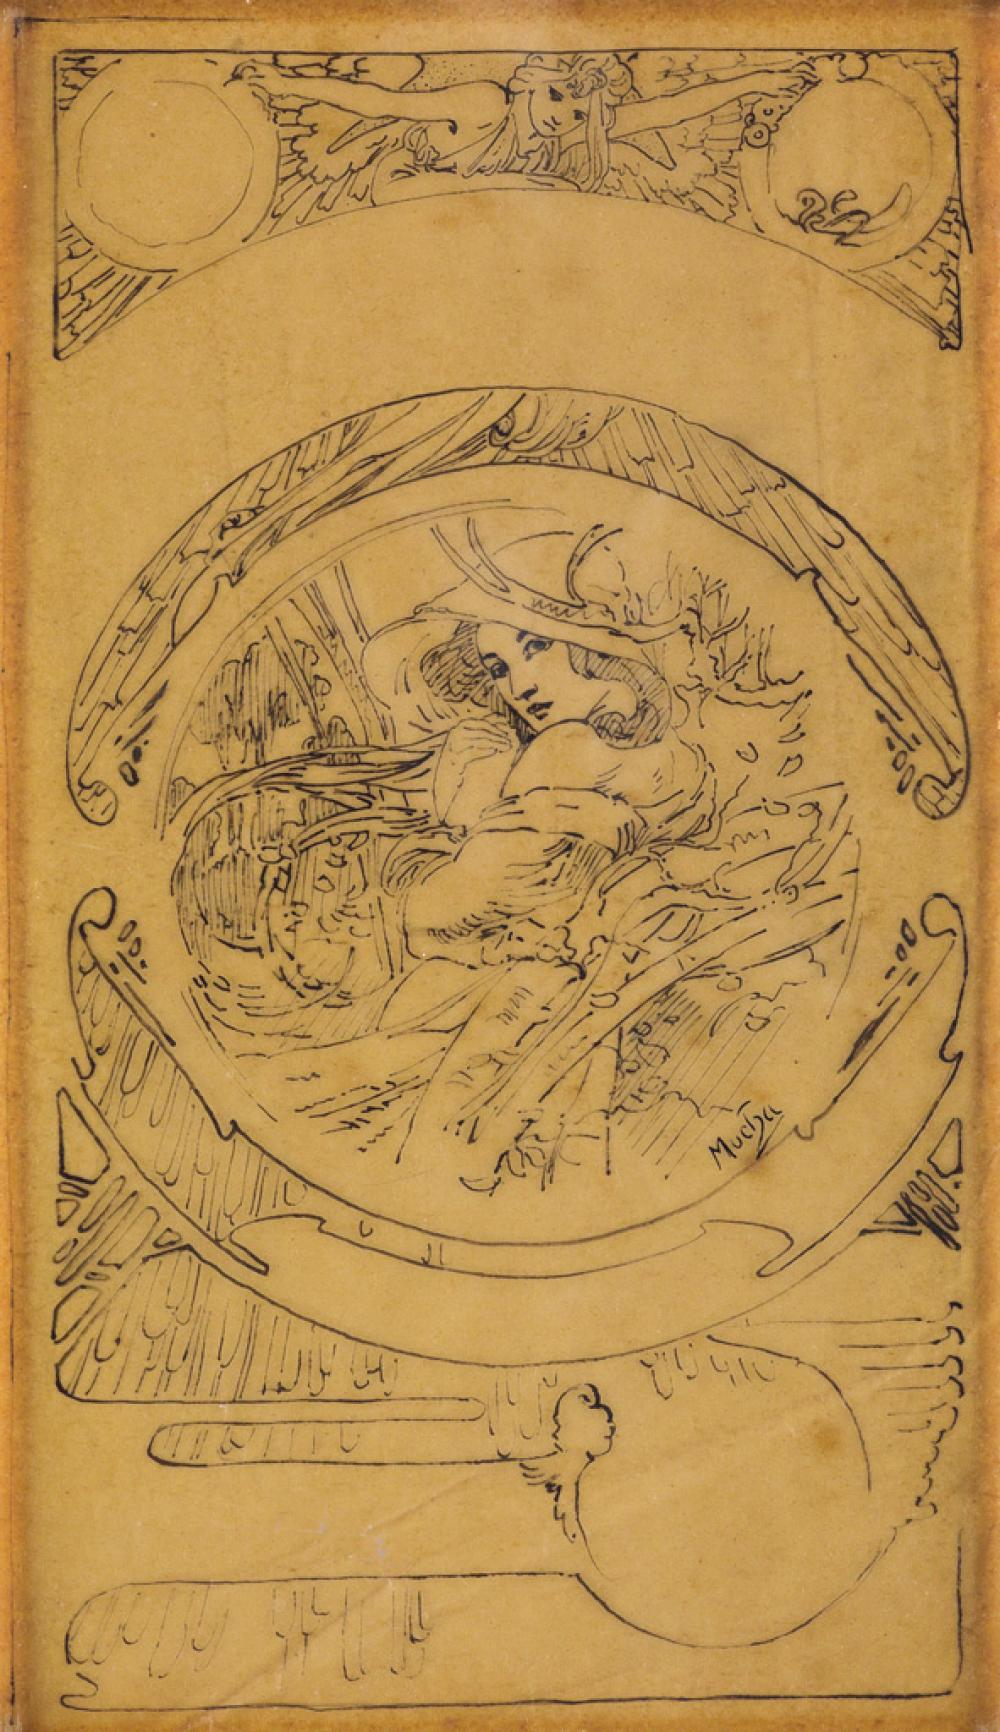 ALPHONSE MUCHA (1860-1939). [LE MOIS / NOVEMBER.] Pen and ink sketch. Circa 1899. 10x5 inches, 25x14 cm.